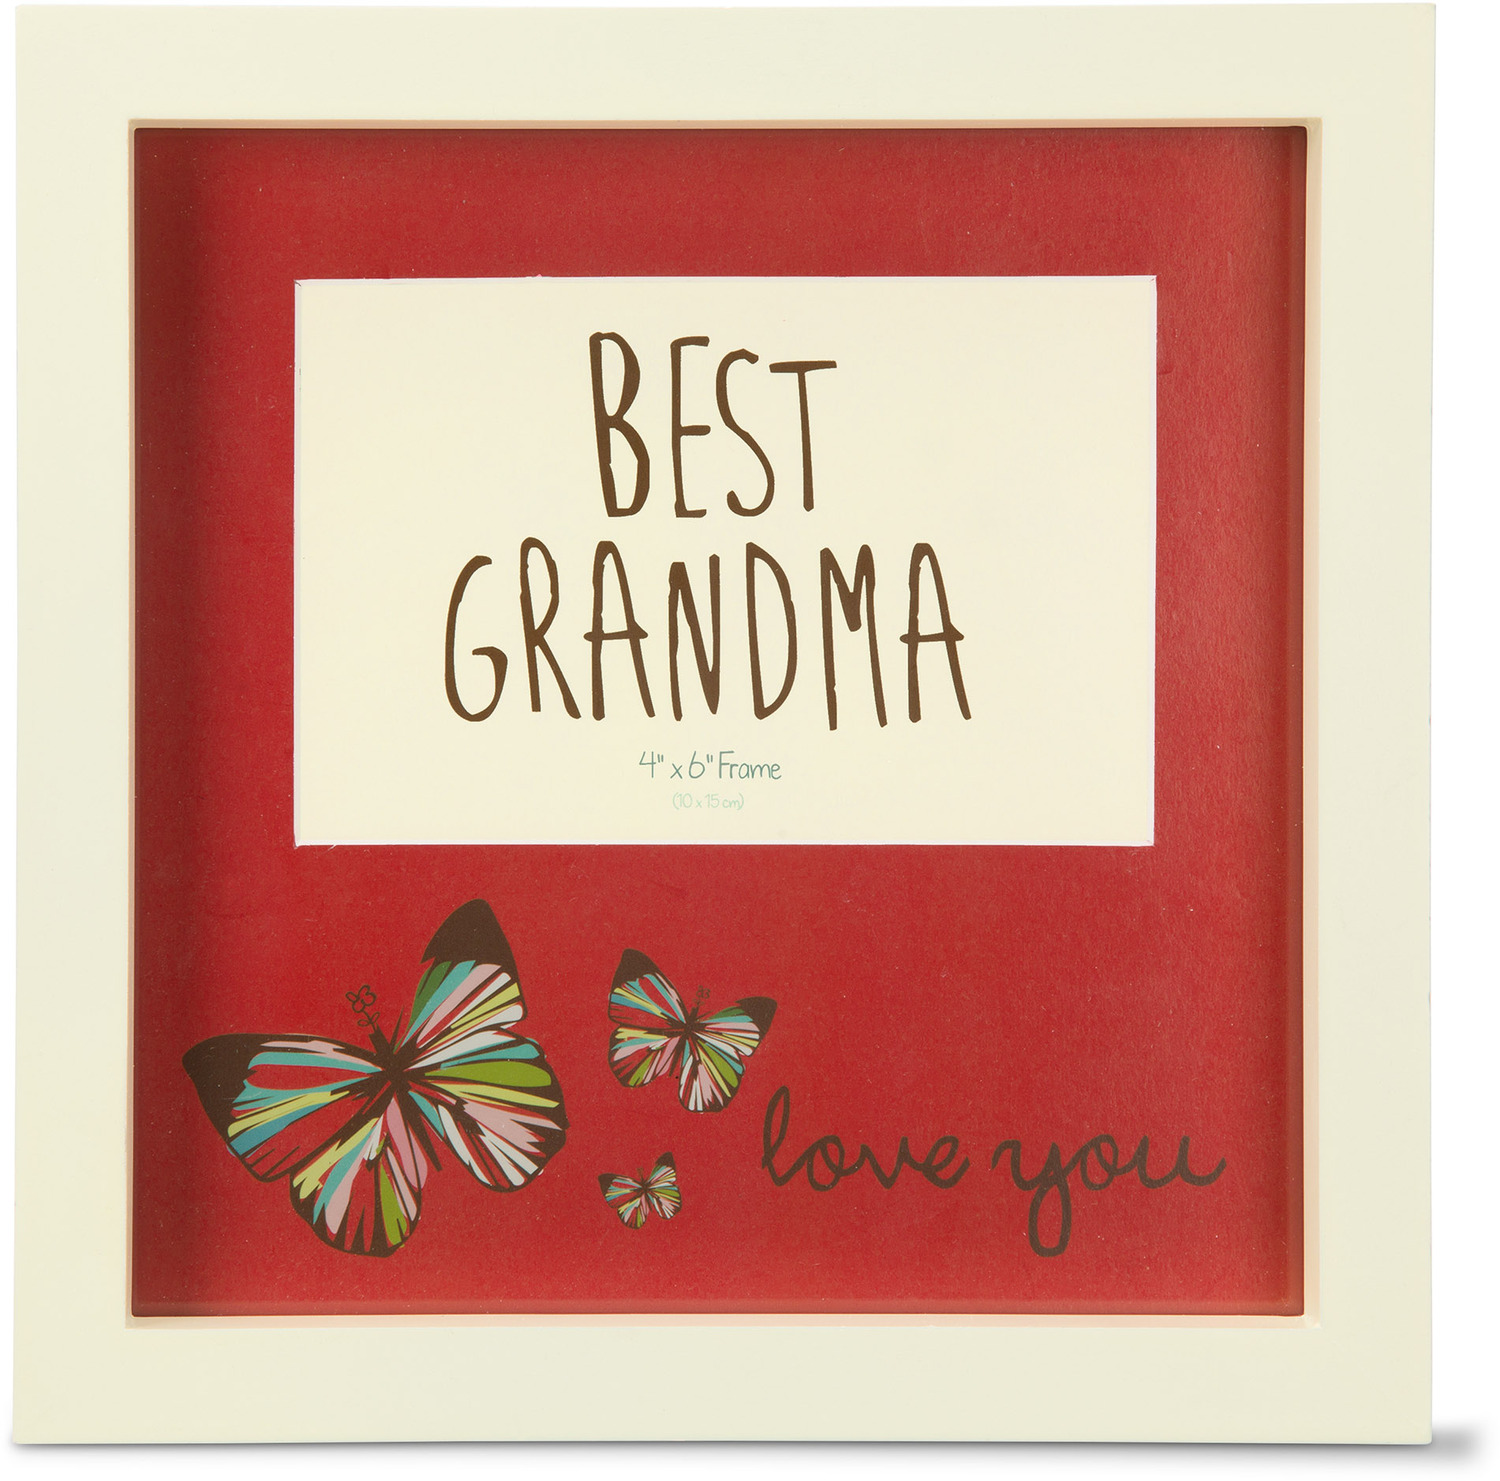 "Best Grandma by A Mother's Love by Amylee Weeks - Best Grandma - 9"" x 9"" Frame"